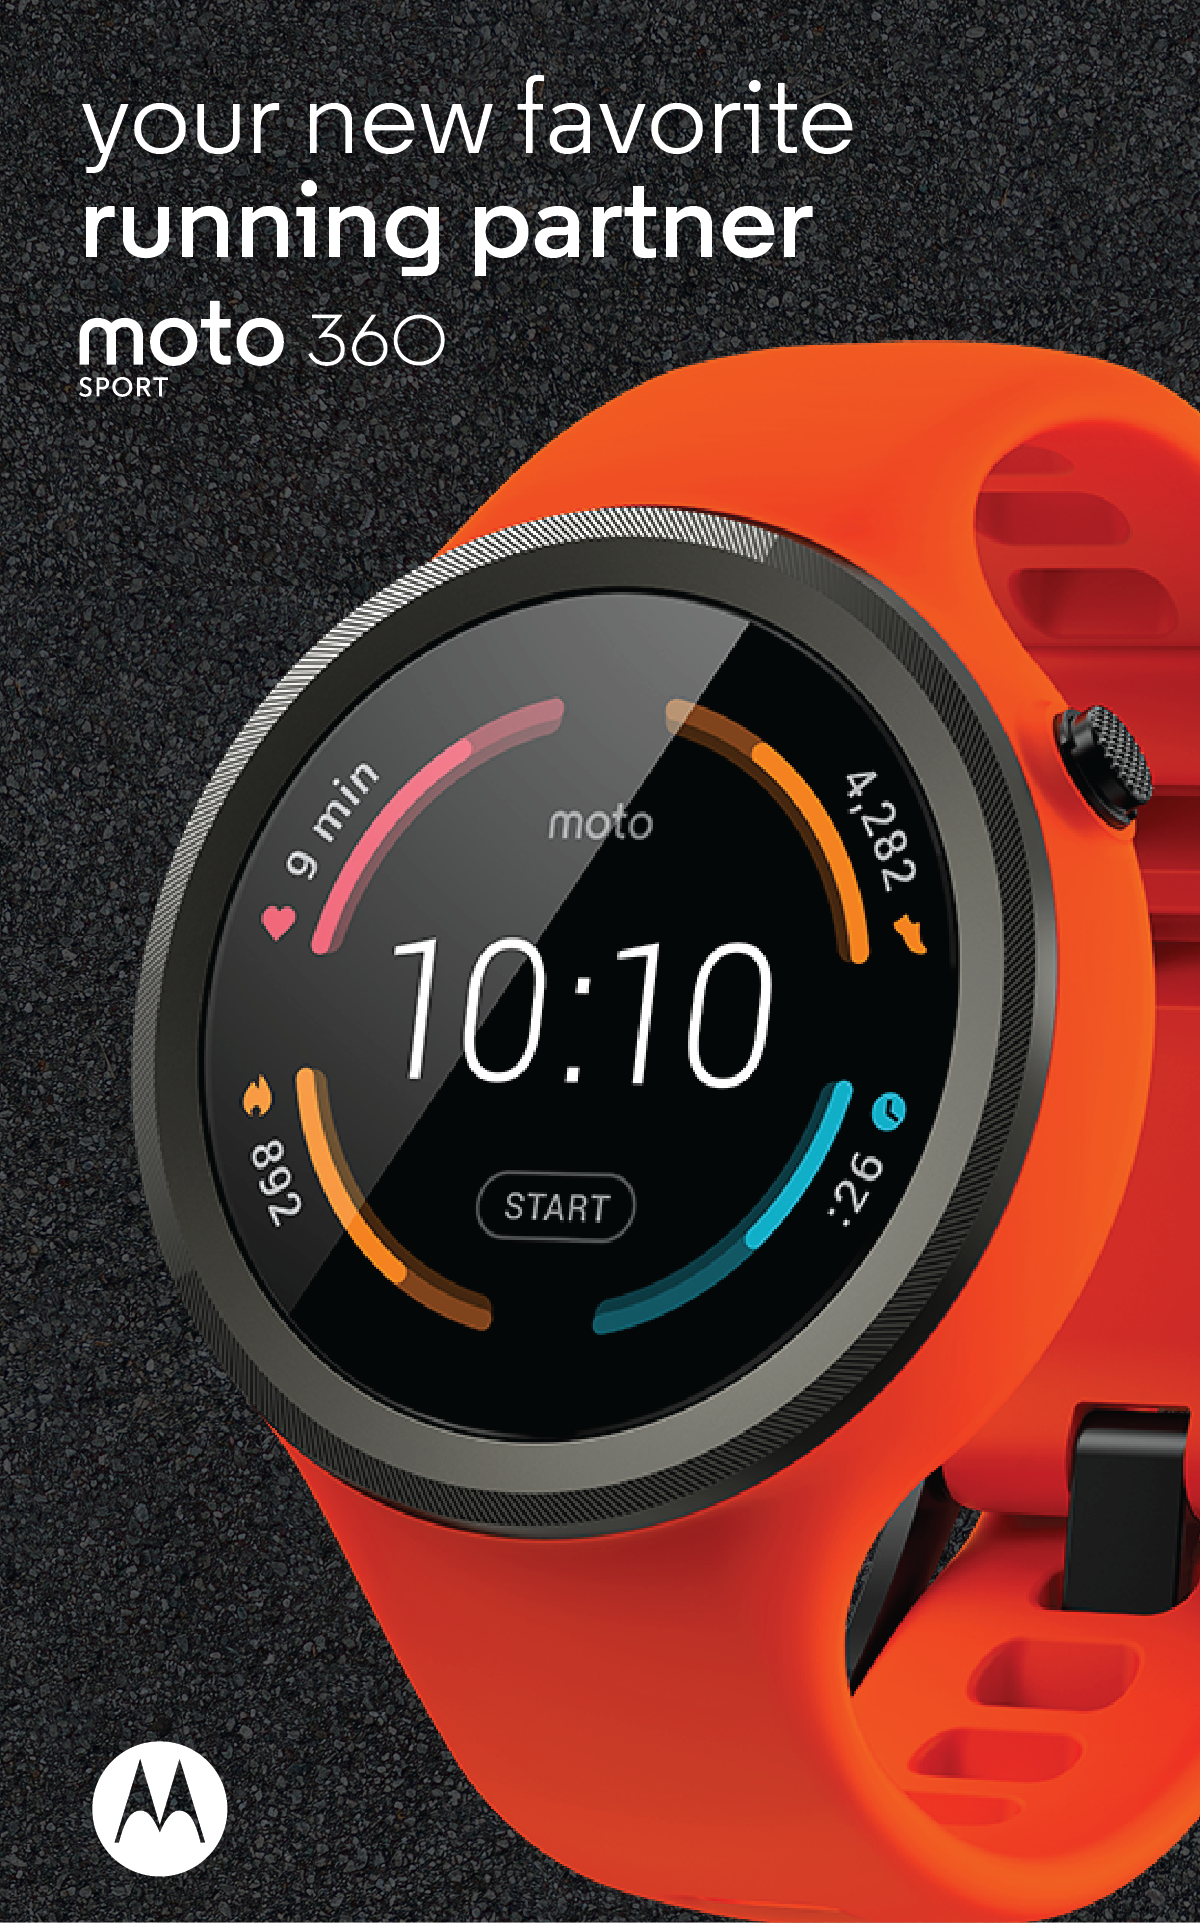 In need of a gift for the runner girl in your life? The Moto